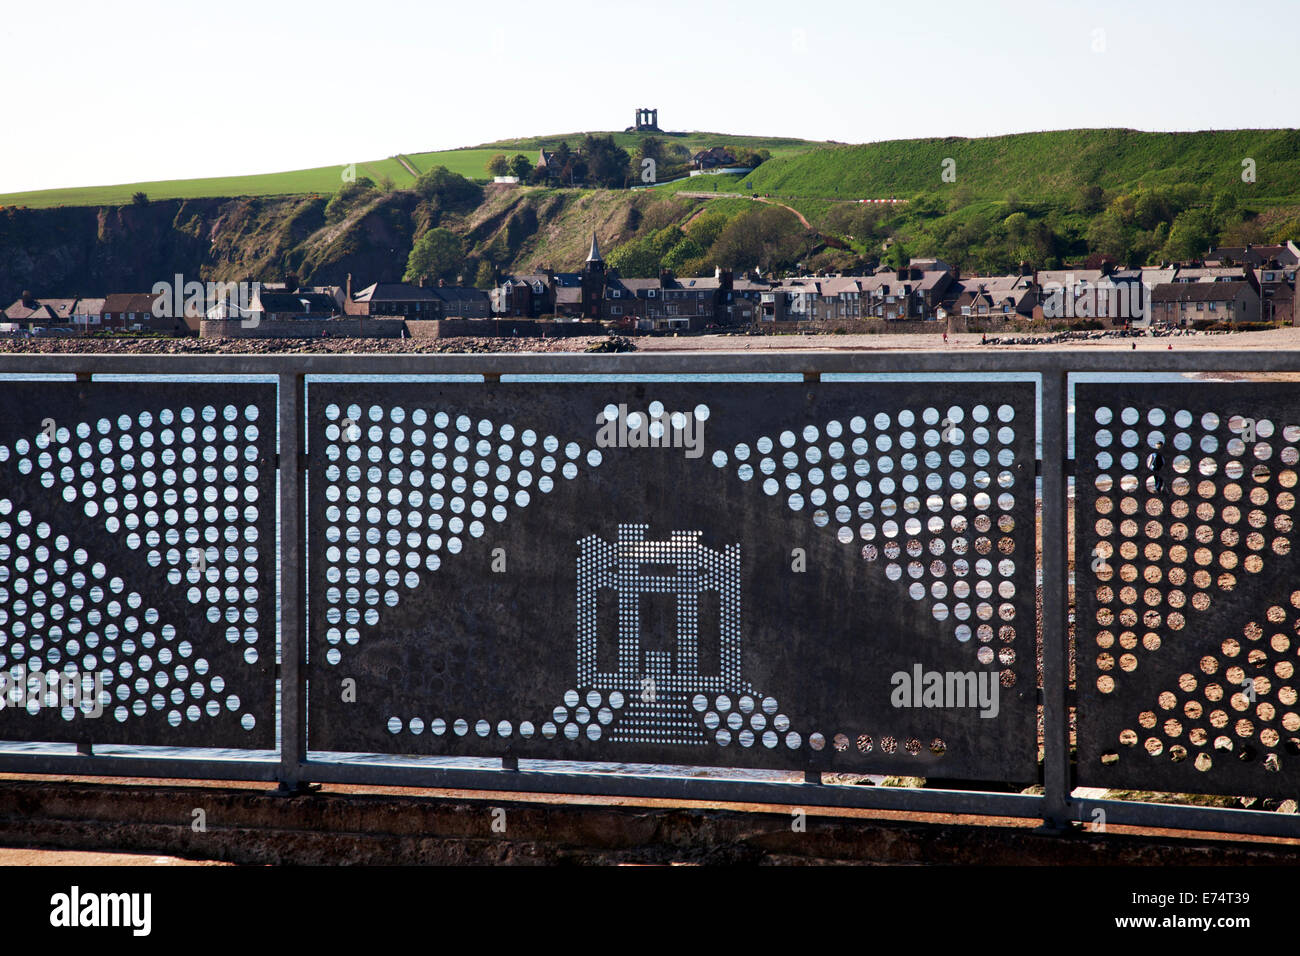 Stonehaven's War Memorial is replicated in a panel of a fence near the local beach. - Stock Image